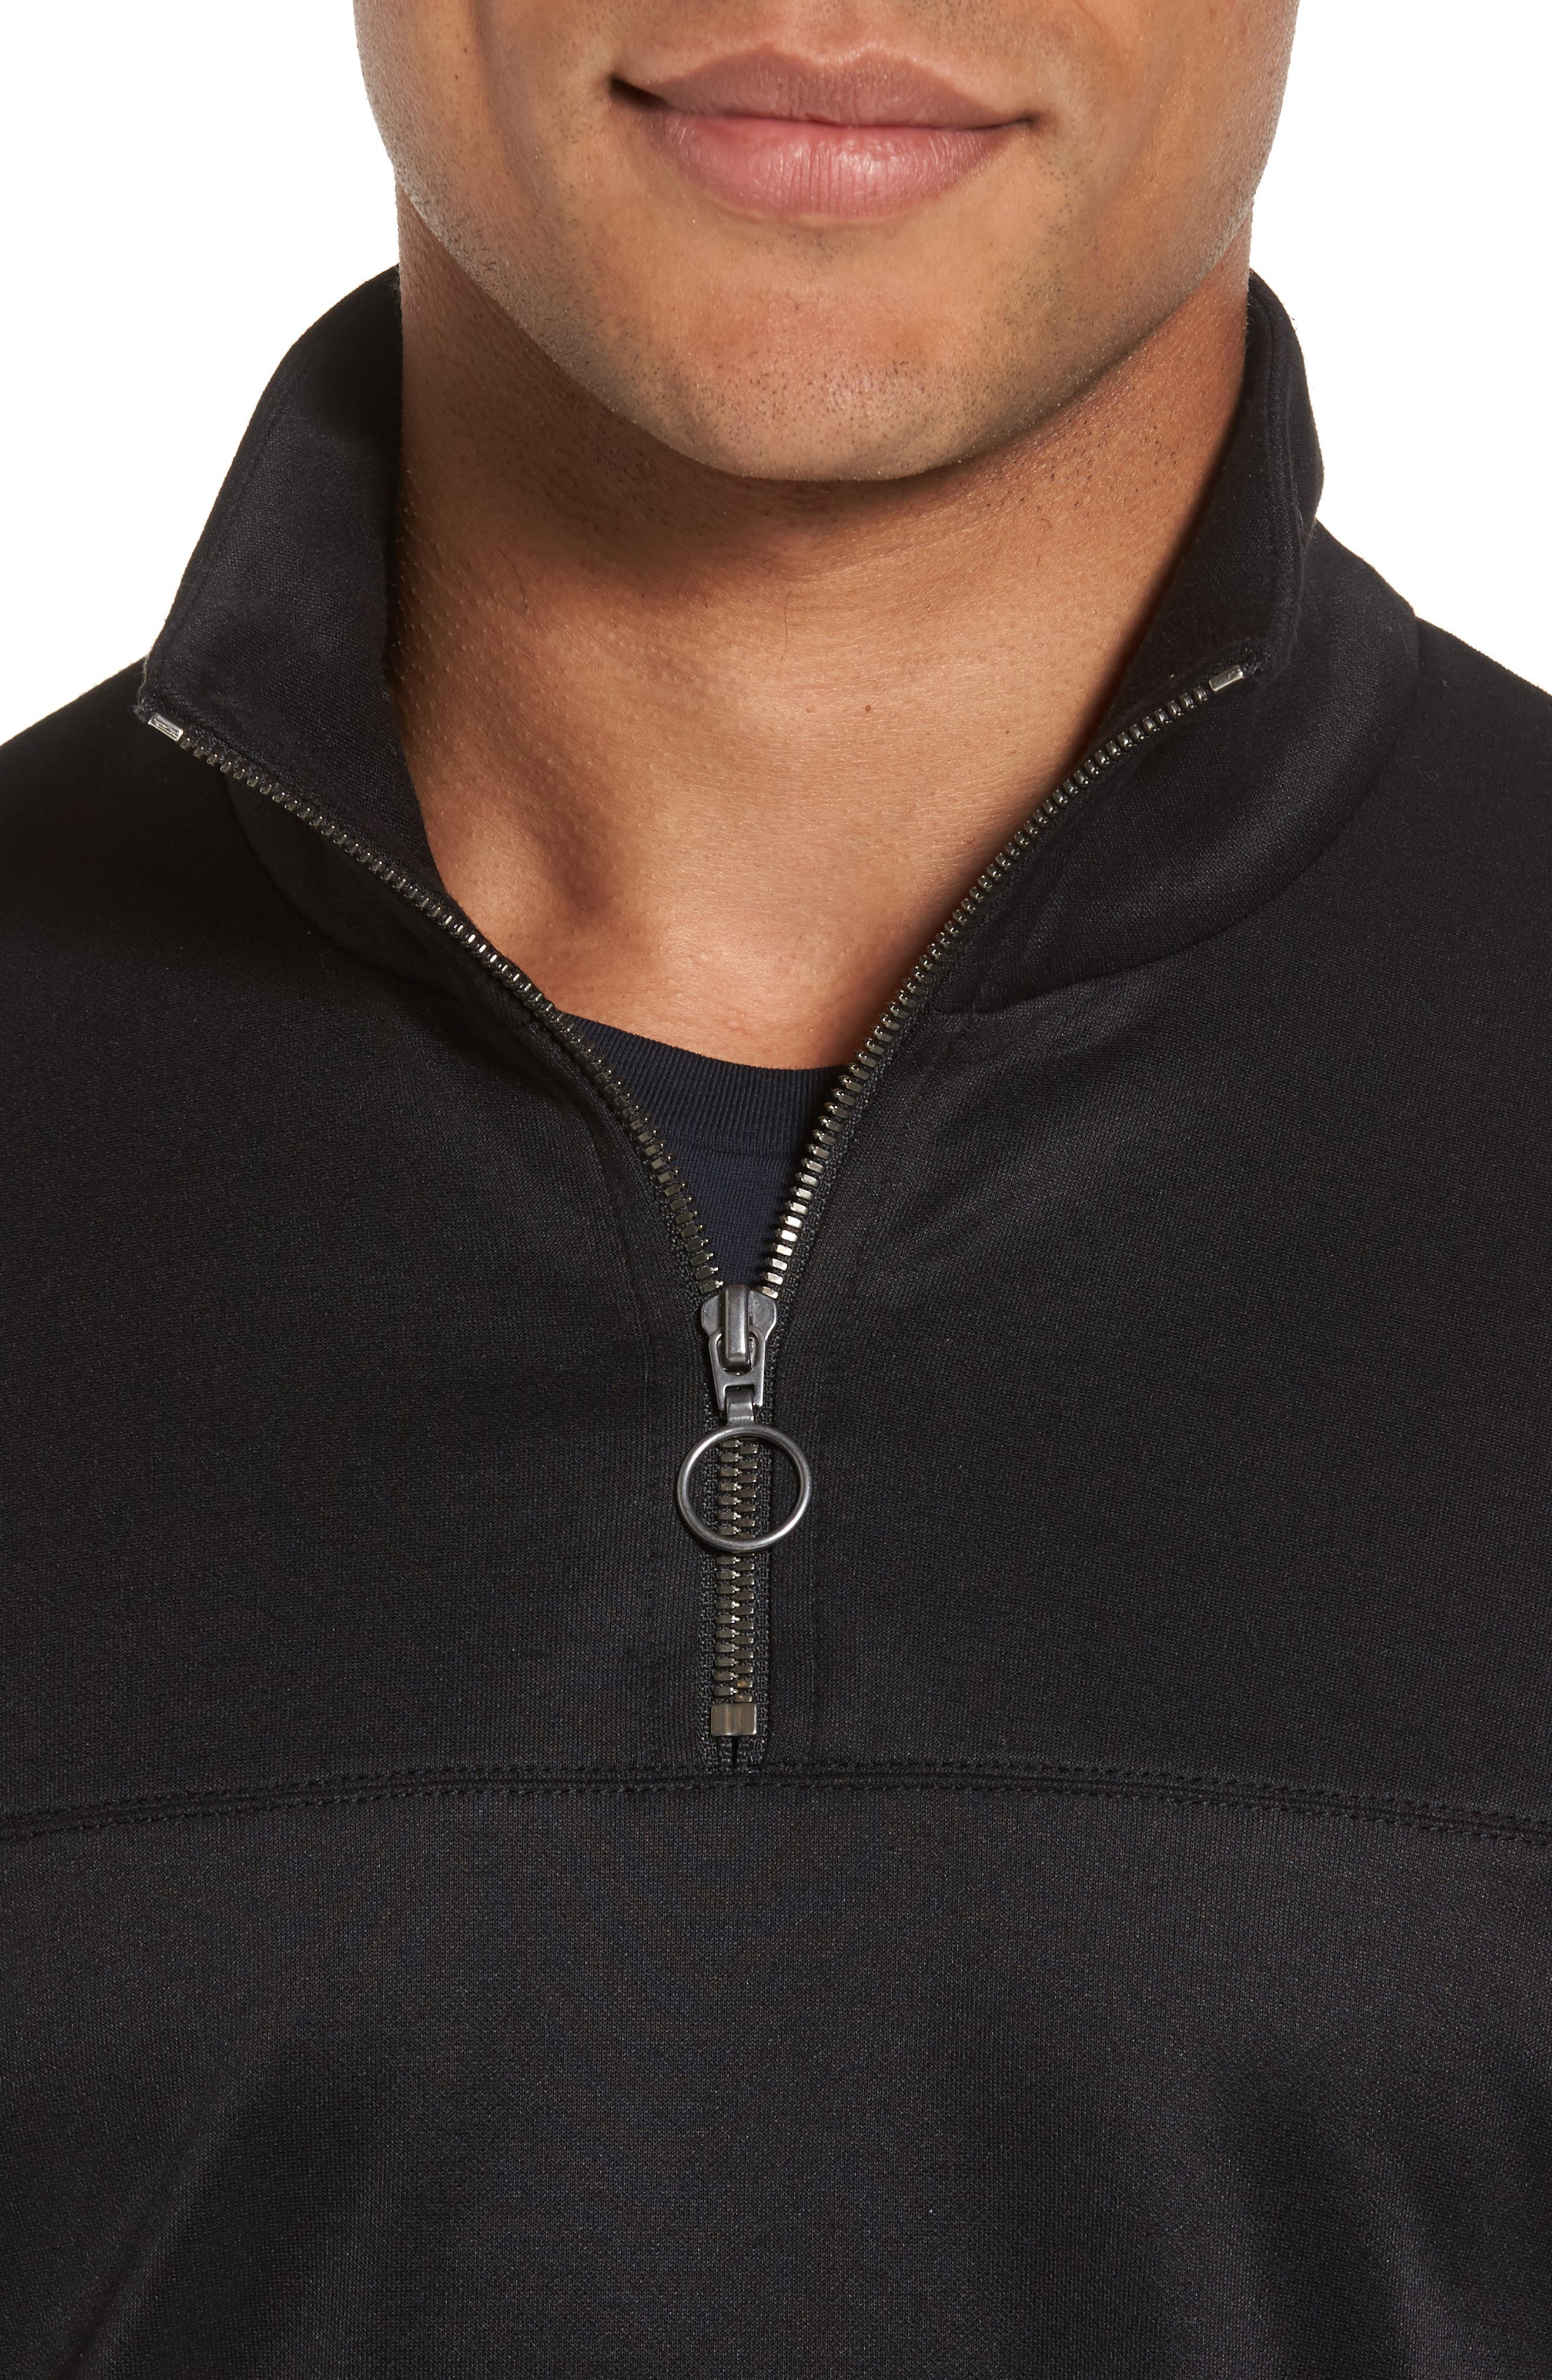 Quarter Zip Jacket,                             Alternate thumbnail 4, color,                             001